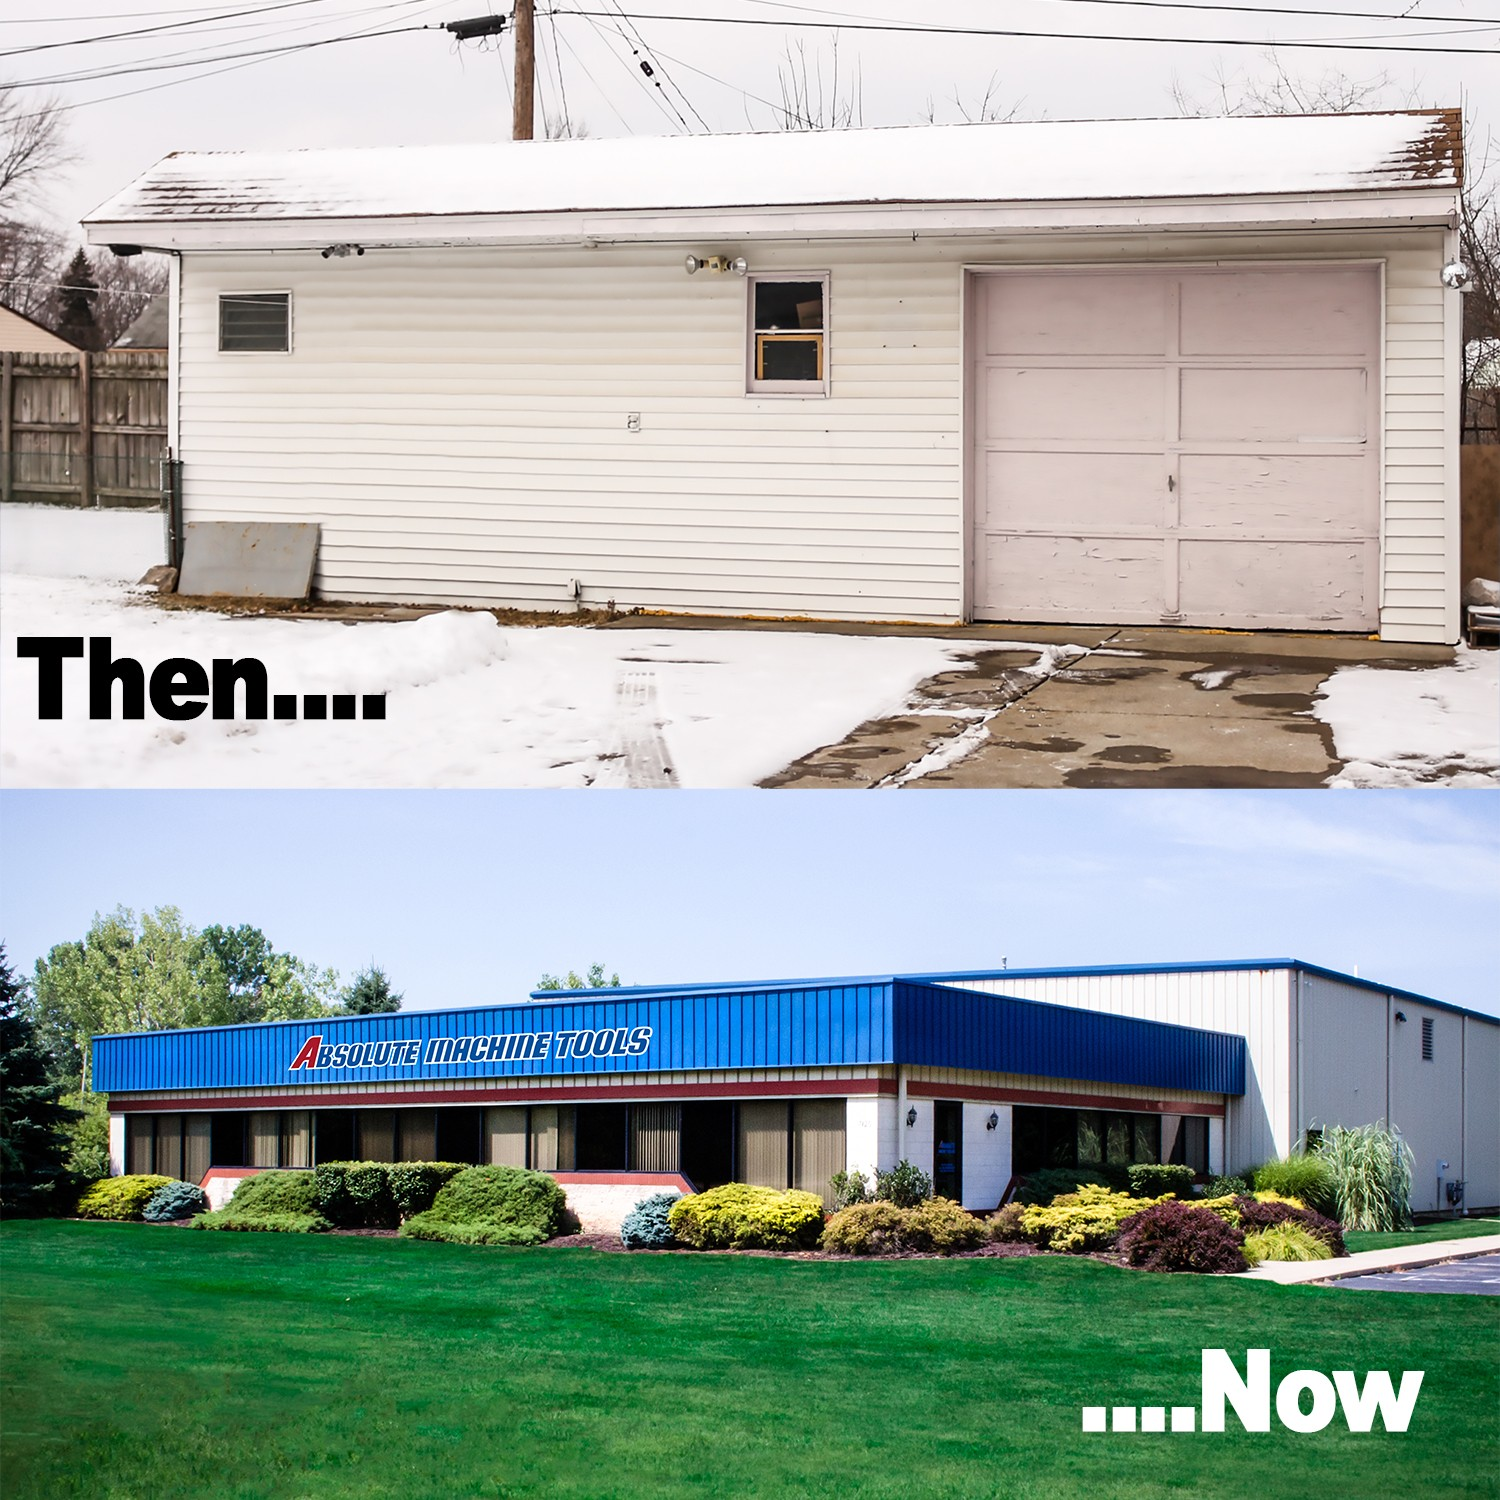 Then (a photo of a small, old, garage) and now (current building) photos of Absolute building